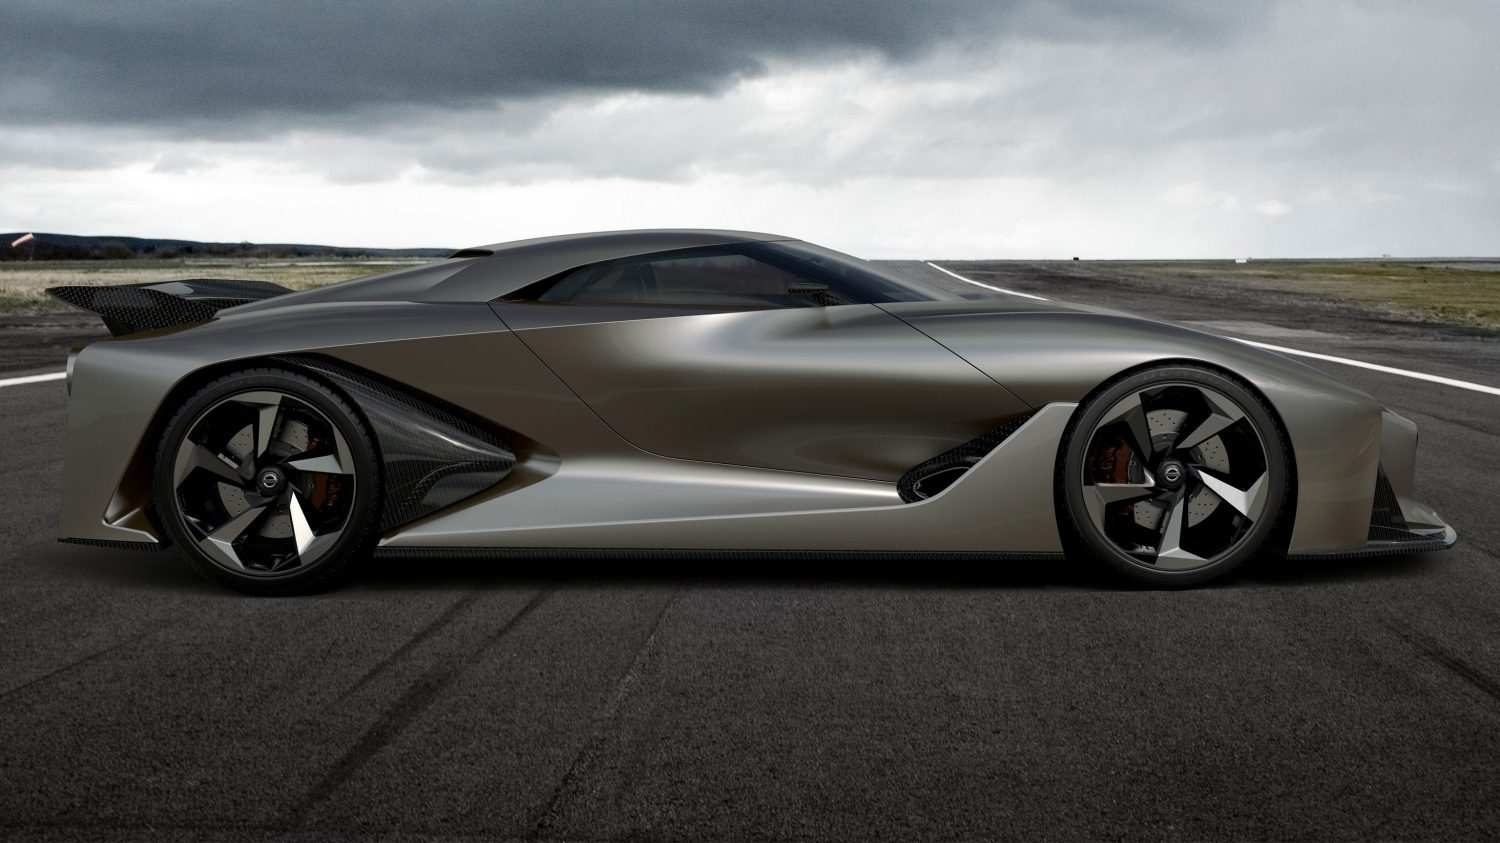 47 New Nissan Concept 2020 Price Images